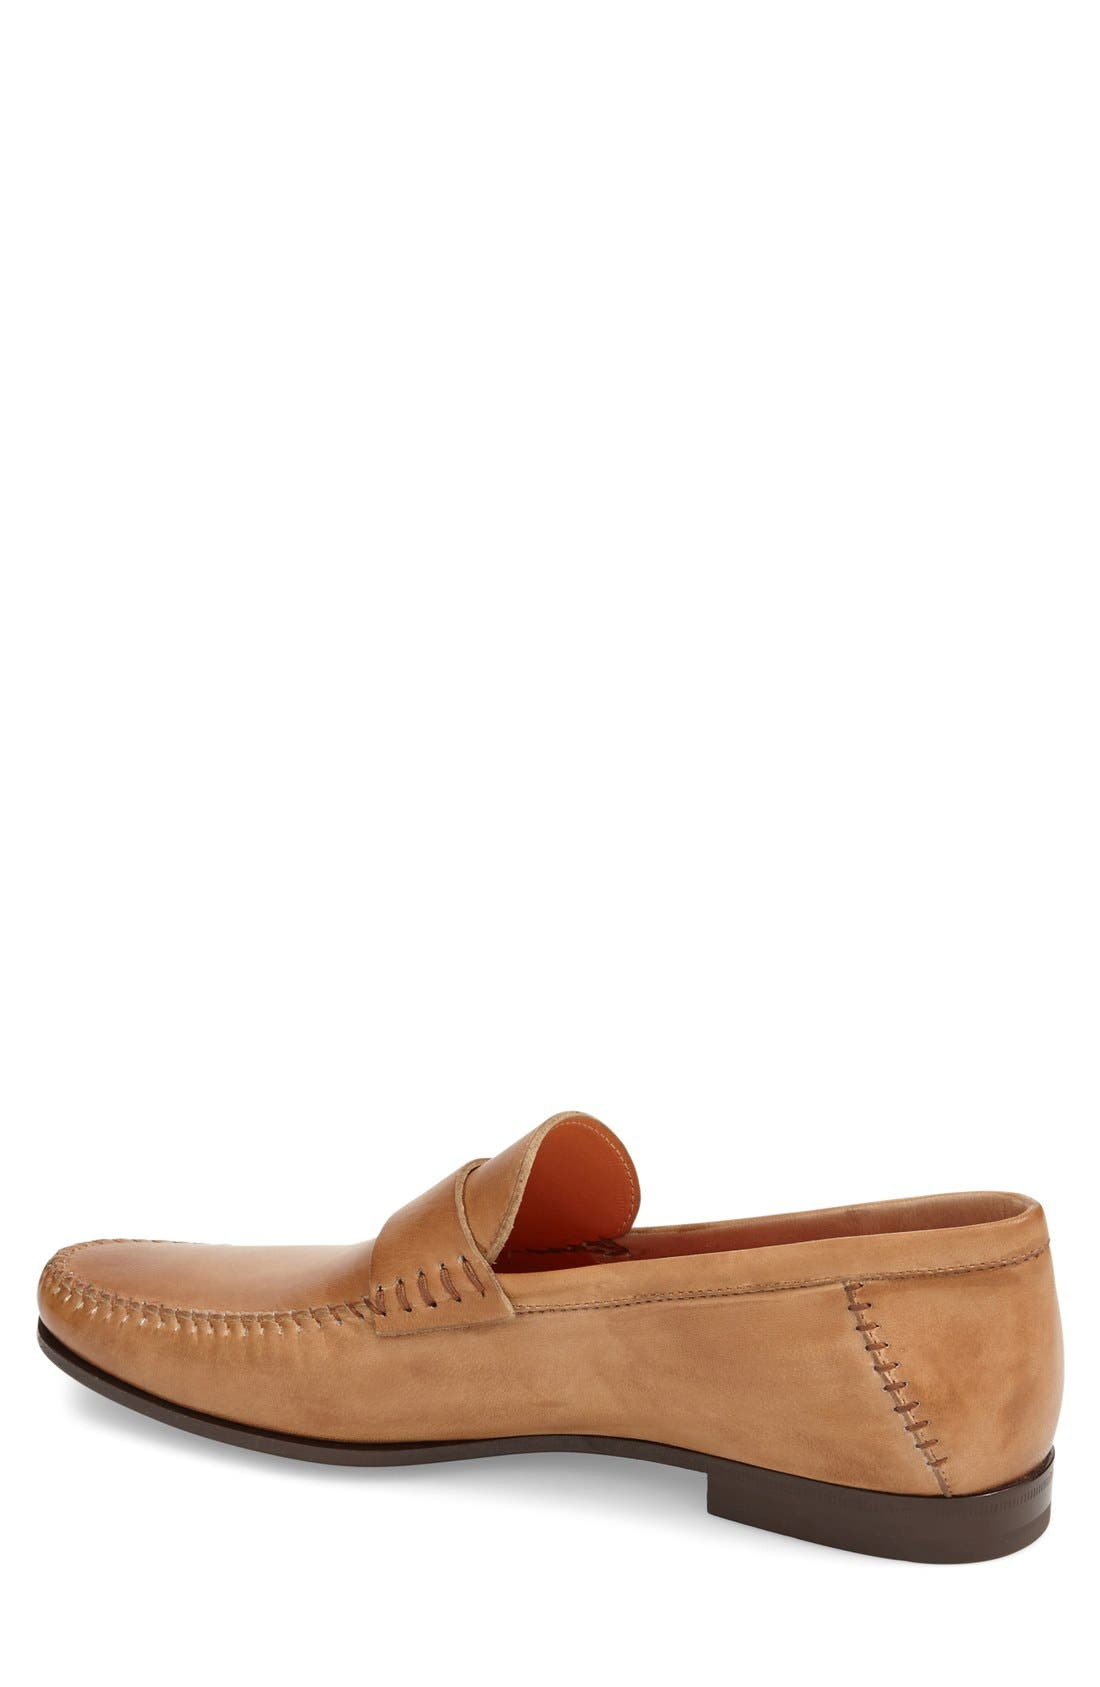 'Paine' Leather Loafer,                             Alternate thumbnail 2, color,                             260